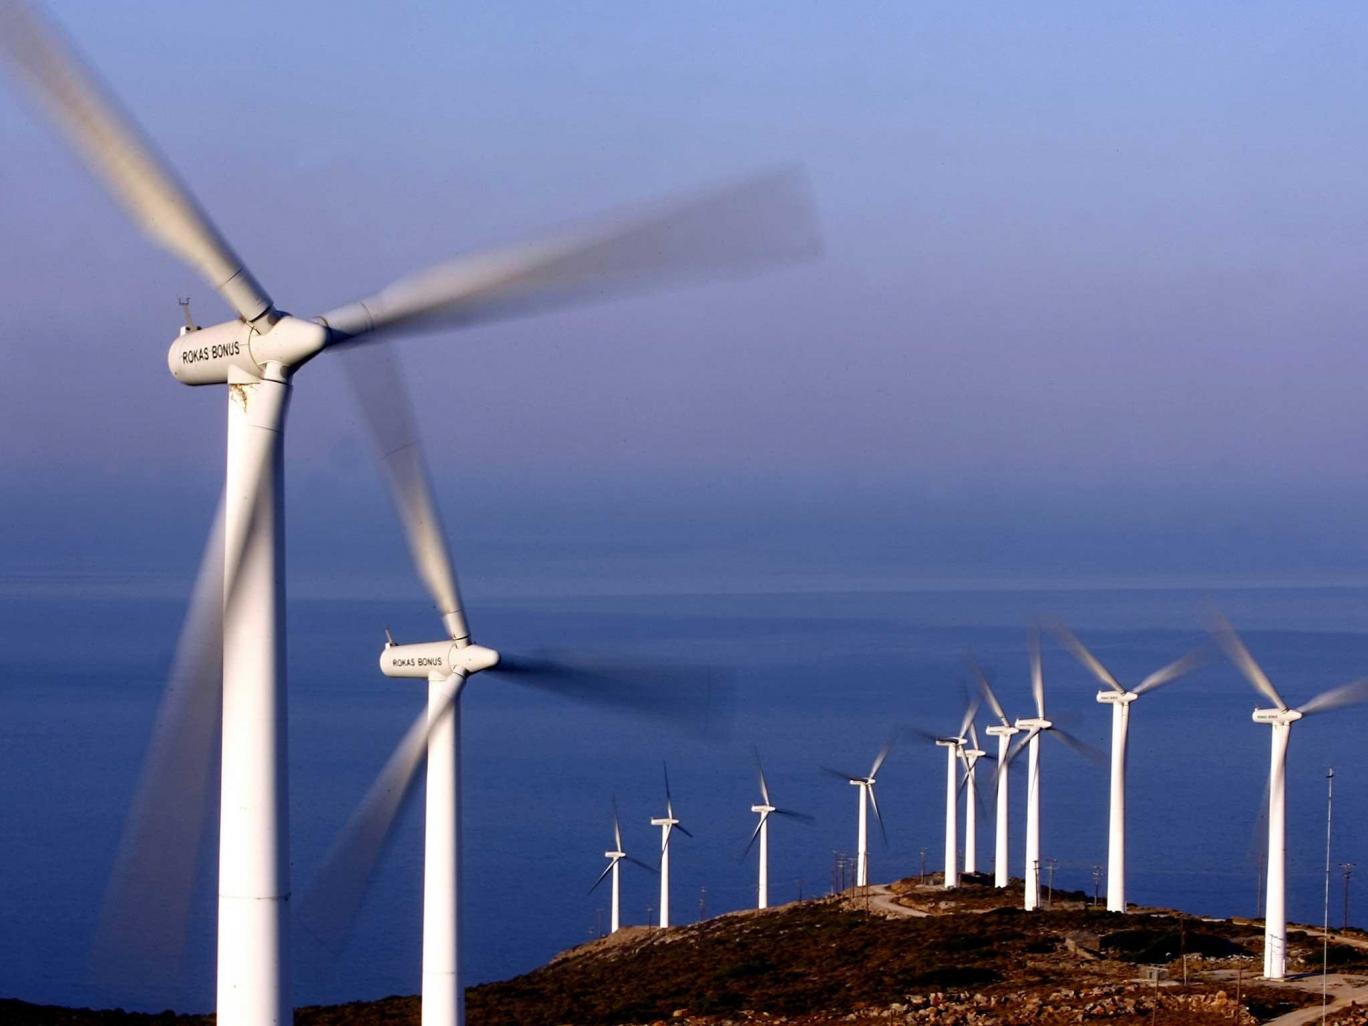 Scotland Providing Power to Most Households With Wind Energy